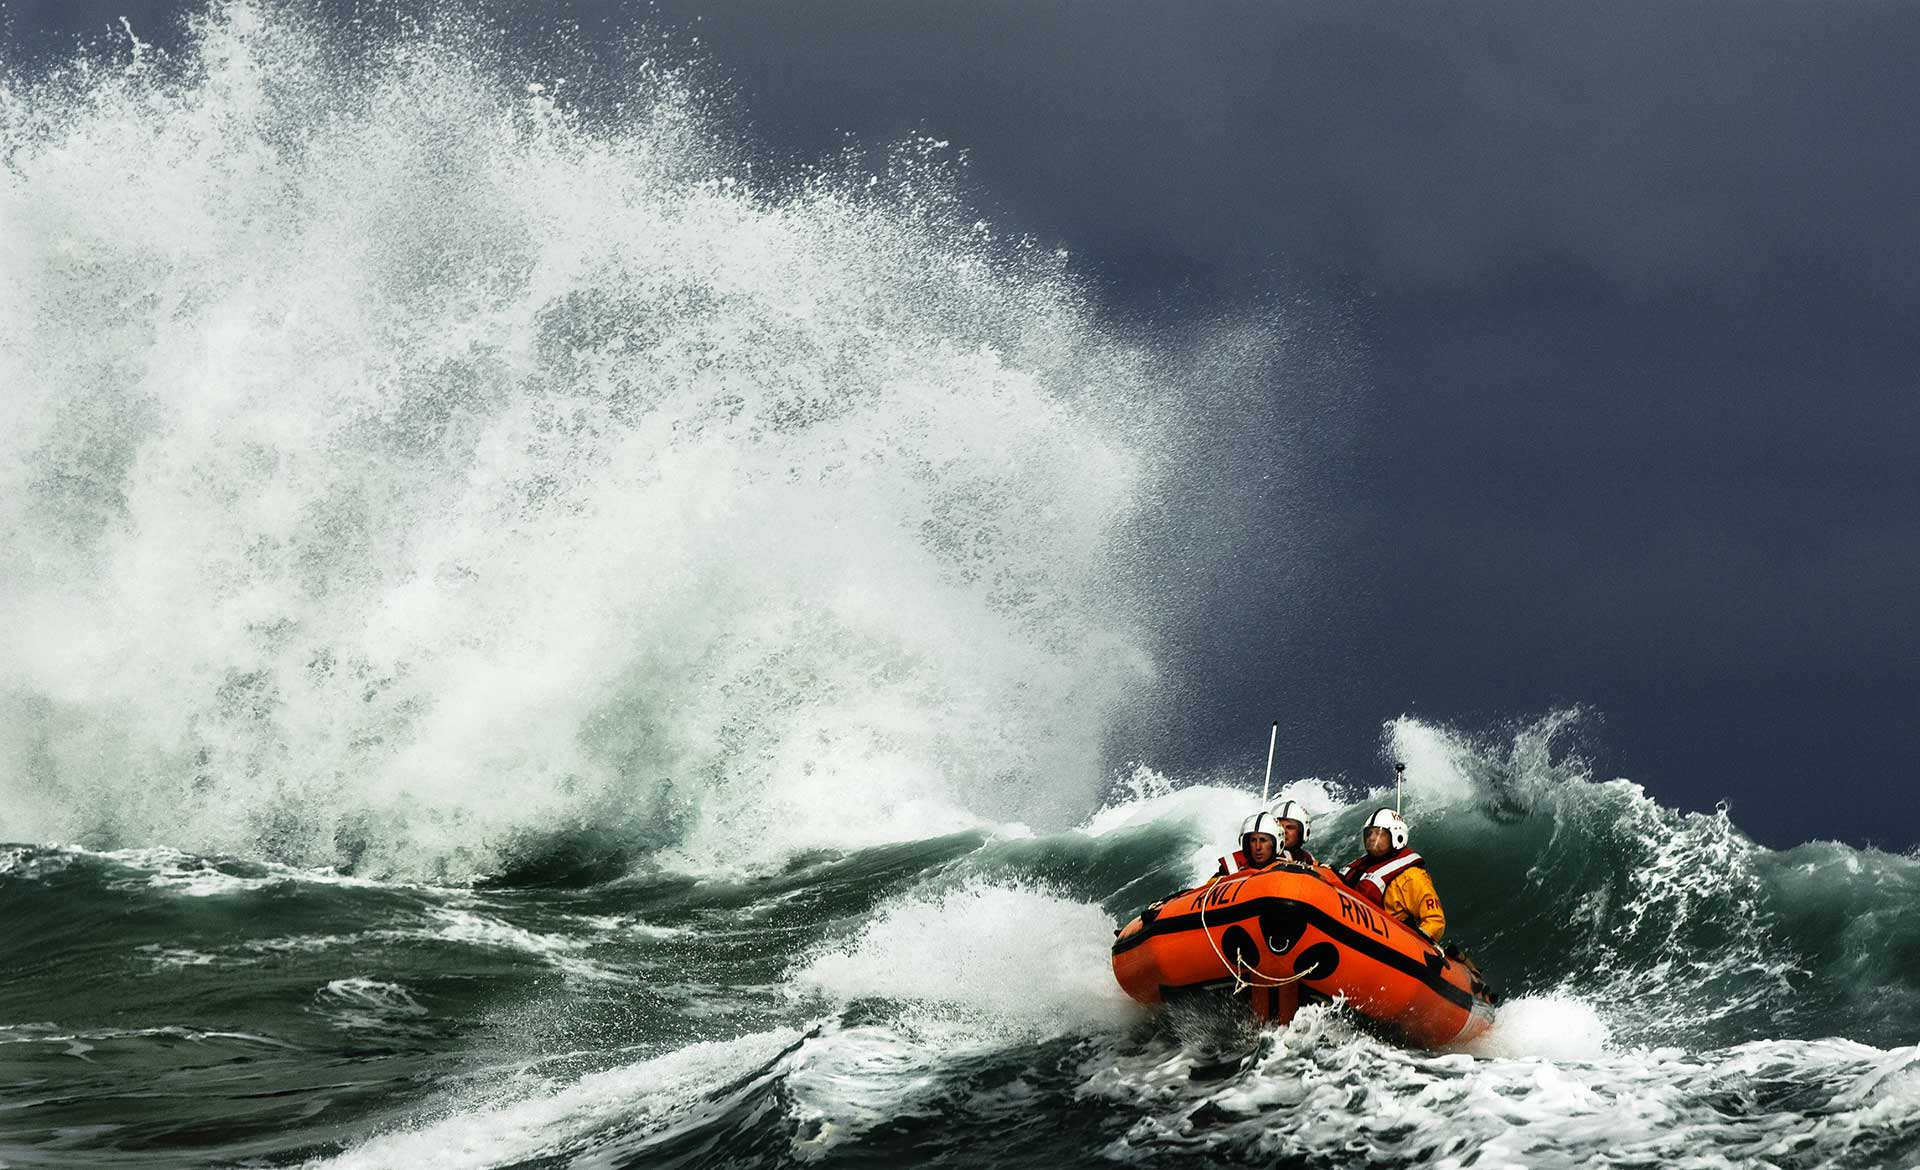 lifeboat-finisterre-goodfromyou-27.jpg